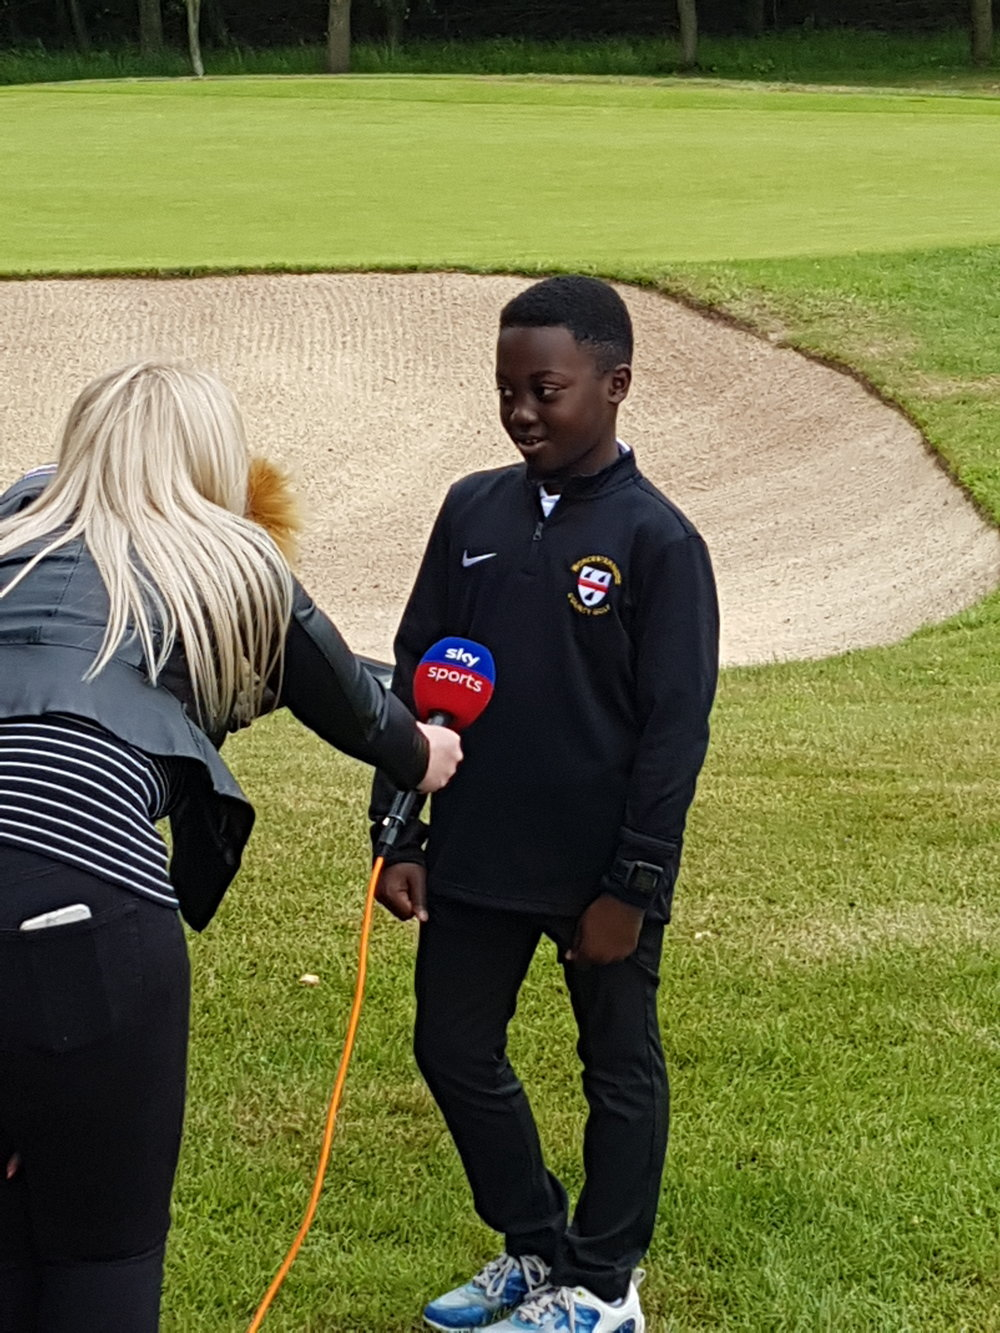 2018 SarfoGolf filming on Father's Day with Kirsty Edwards Sky Sports